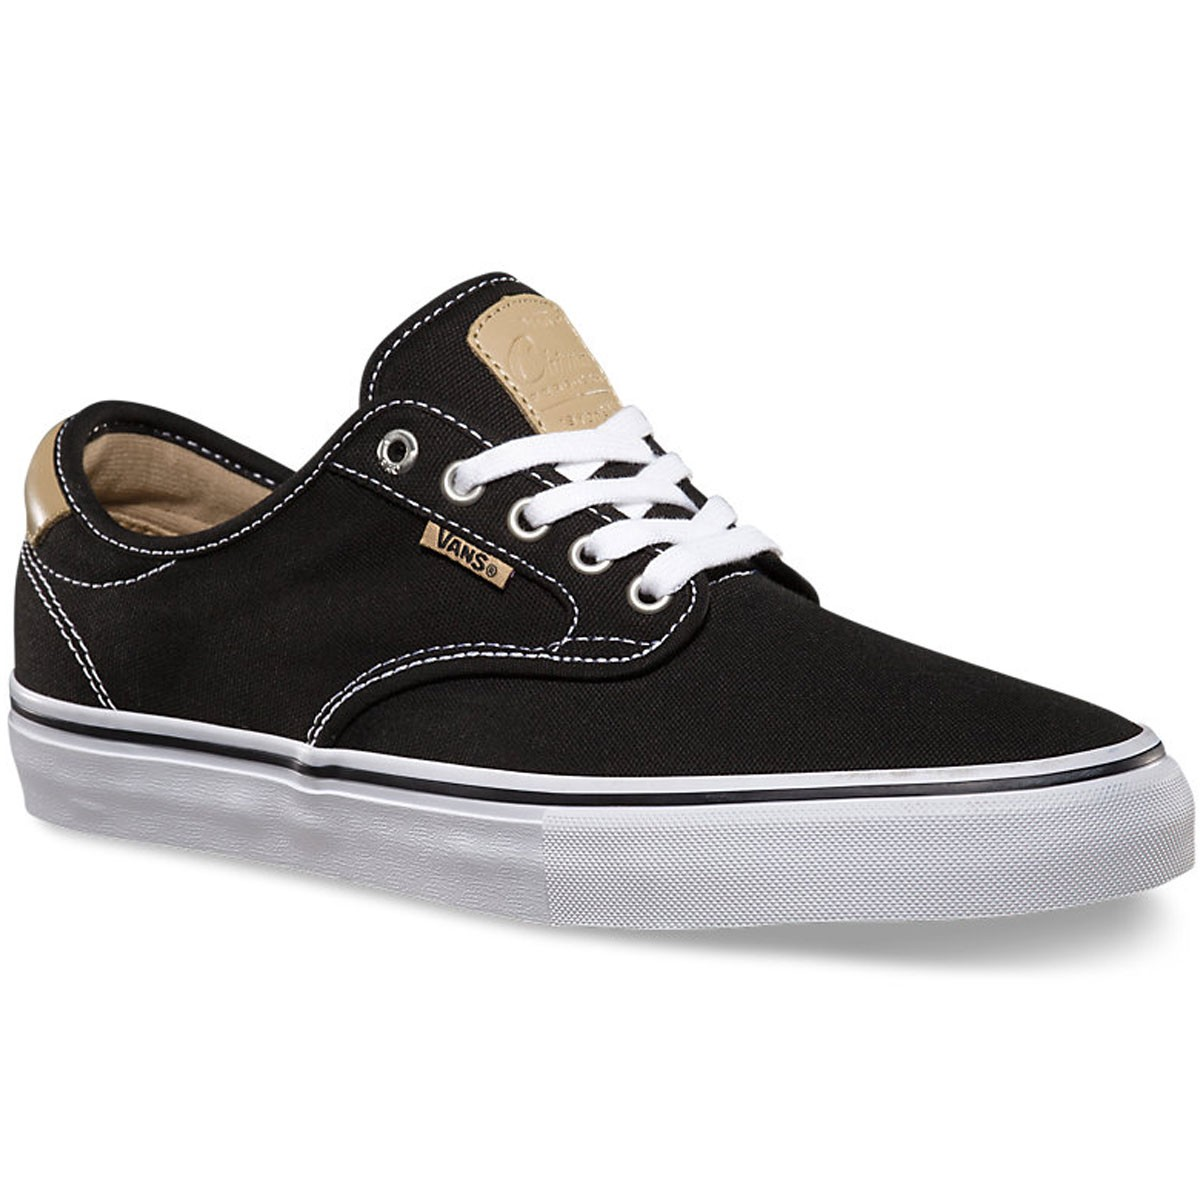 Vans Chima Ferguson Pro Shoes - Black/Tan - 10.0